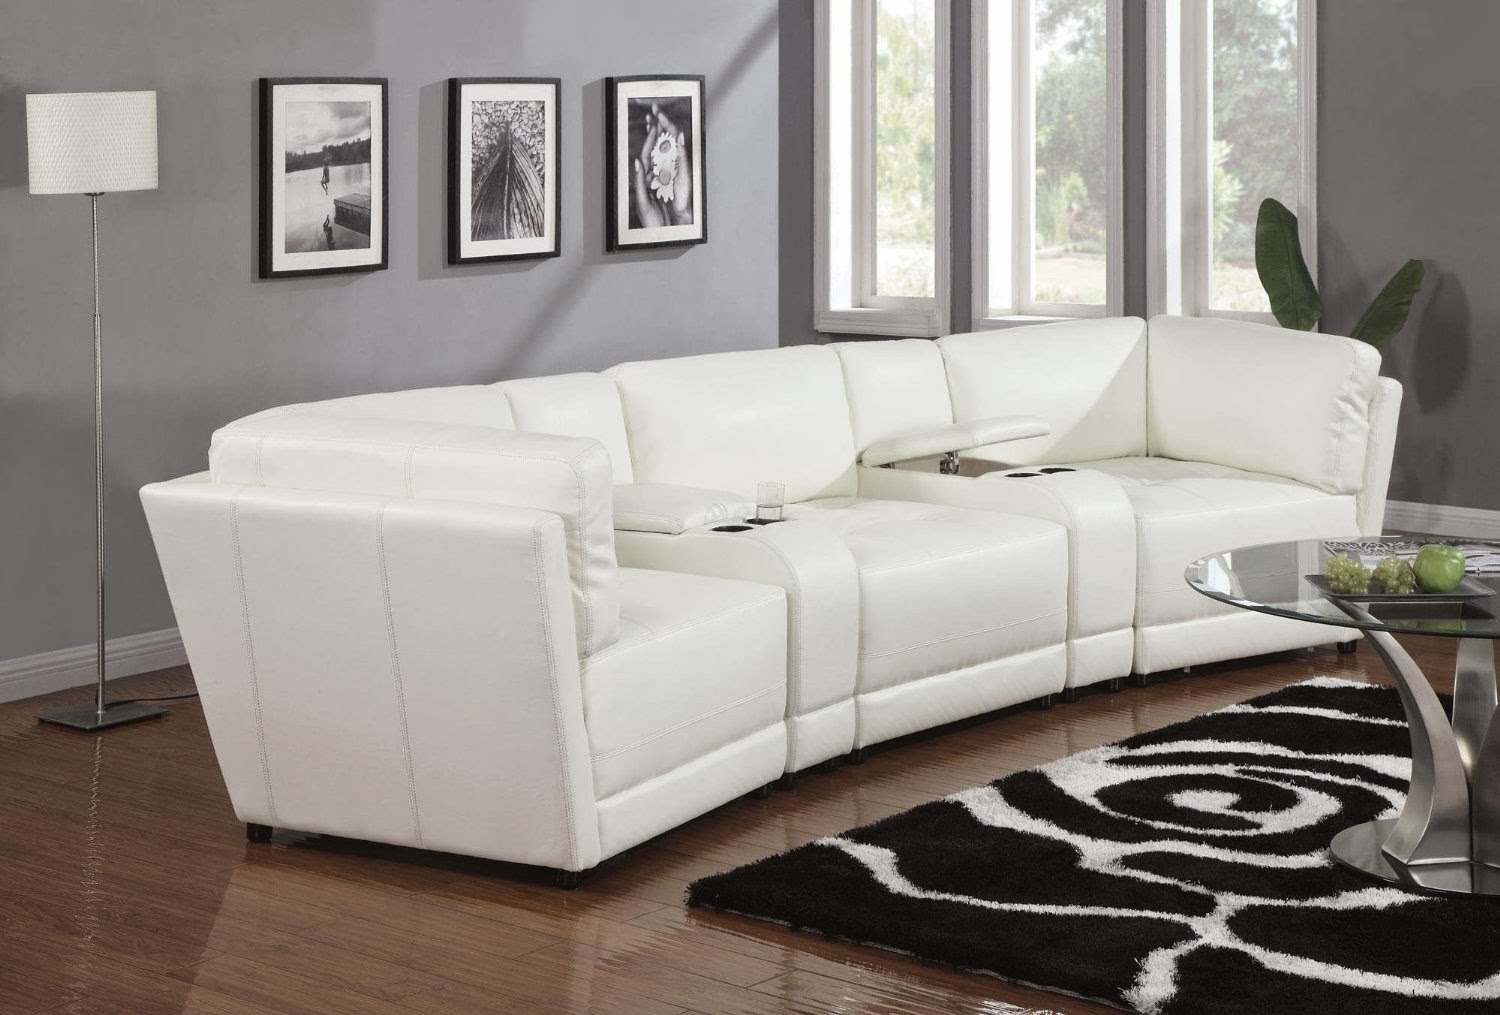 Petite Sectional Sofa – Cleanupflorida Regarding Vancouver Sectional Sofas (View 6 of 10)